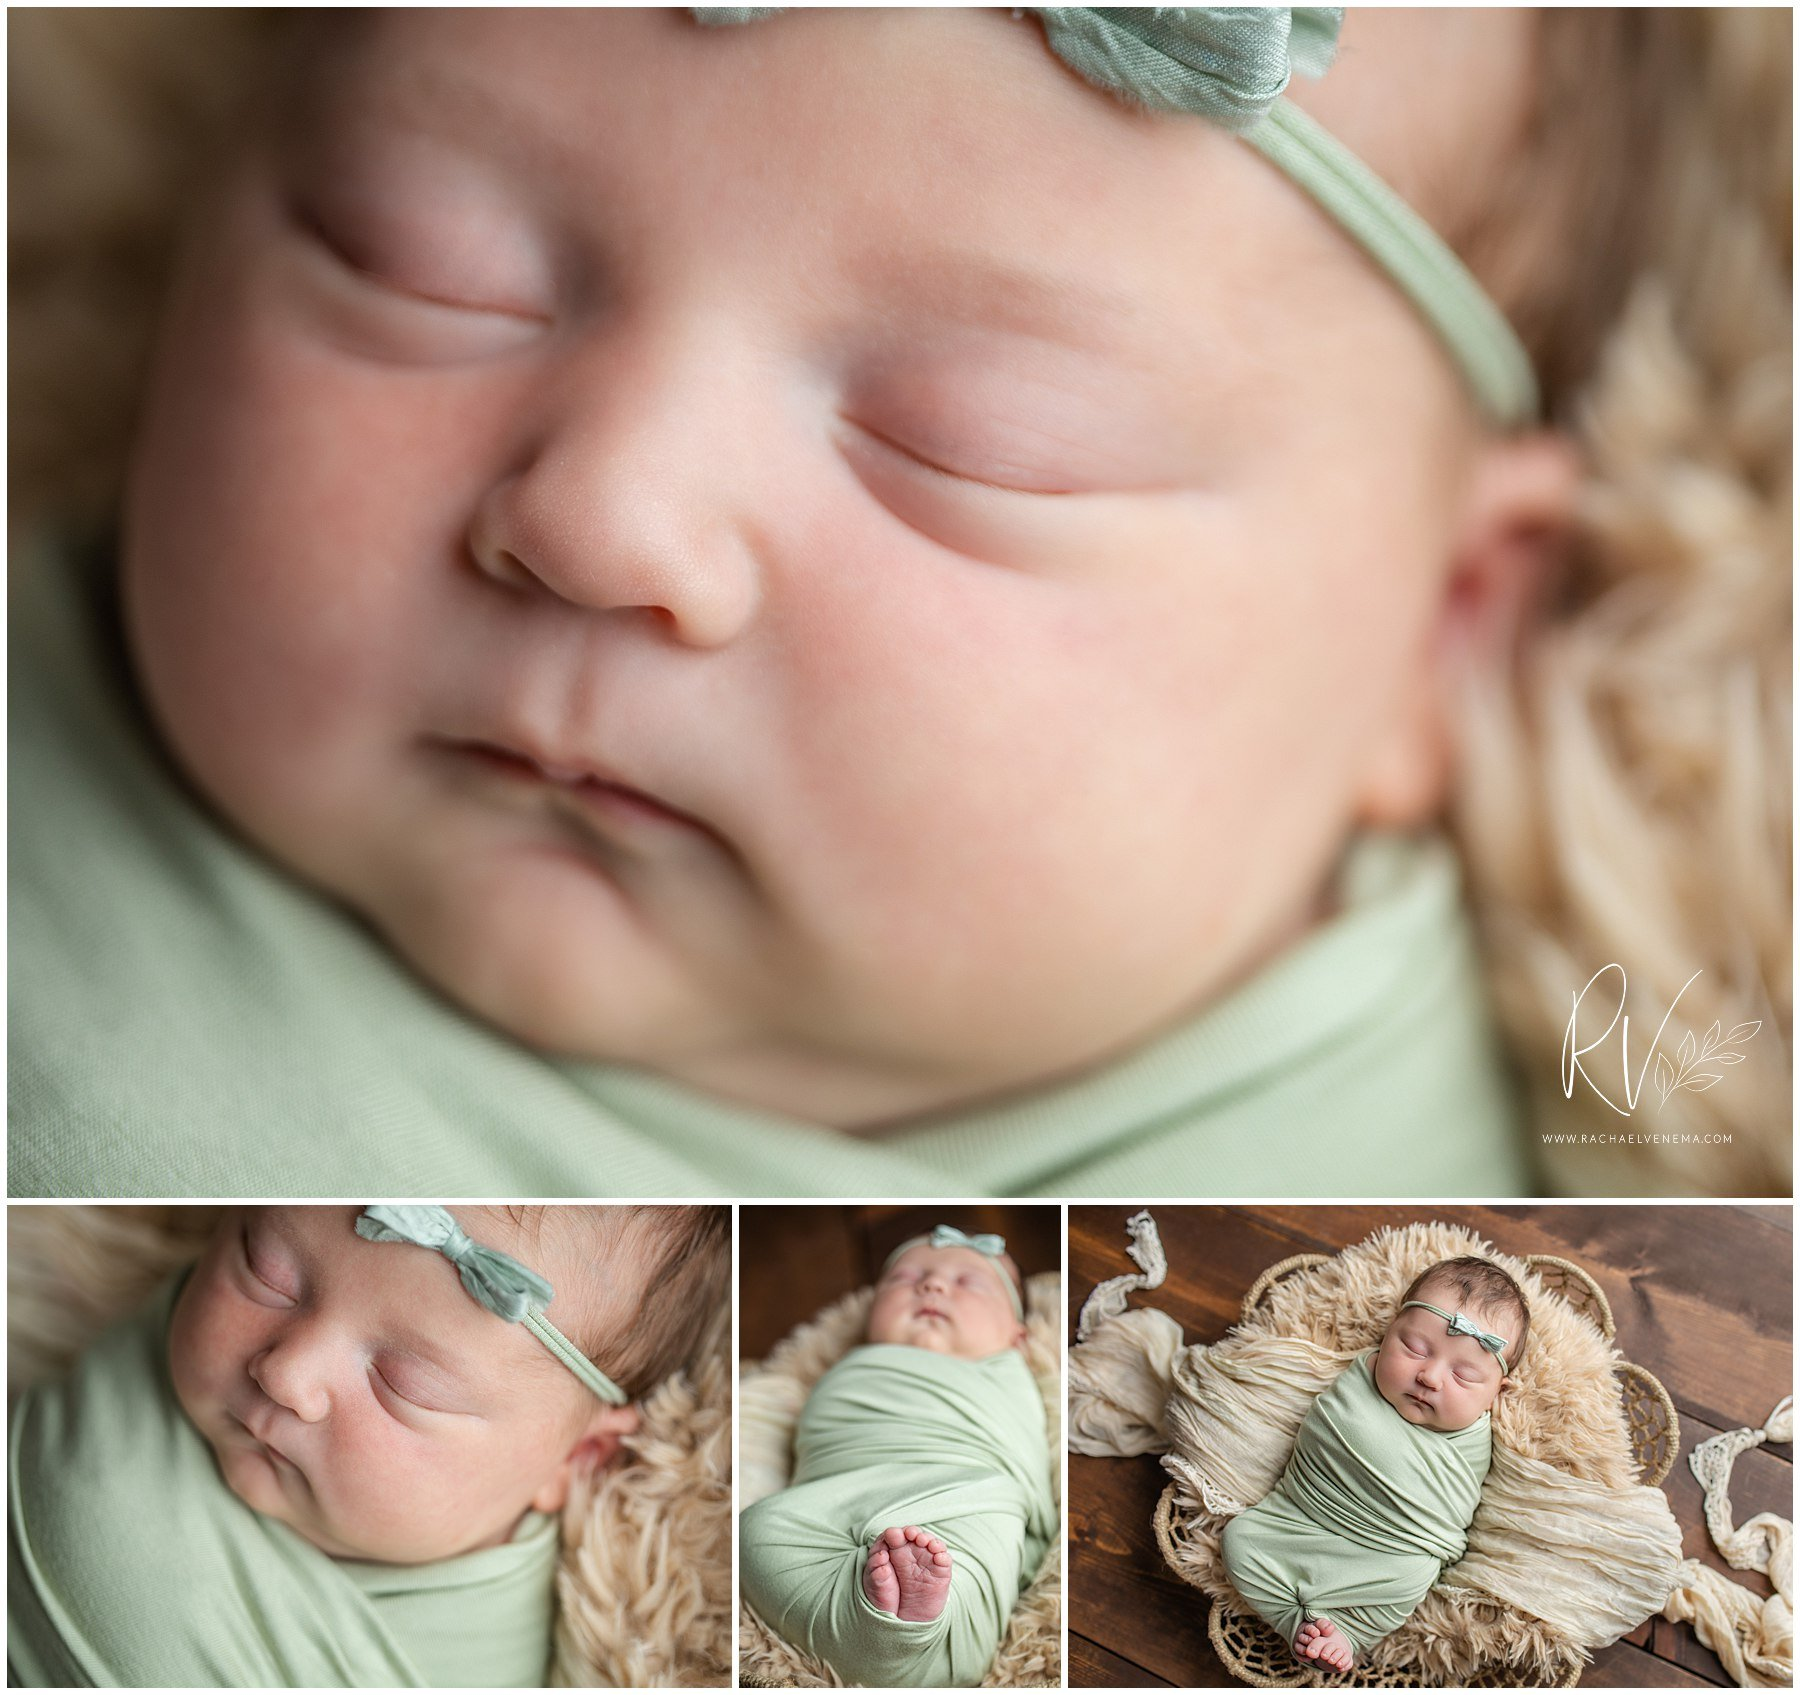 professional baby portraits, babies, newborn portraits, photographing your baby, ripon photographer, ripon newborn photographer, ripon family photographer, ripon portrait photographer, central valley photographer, northern california photographer